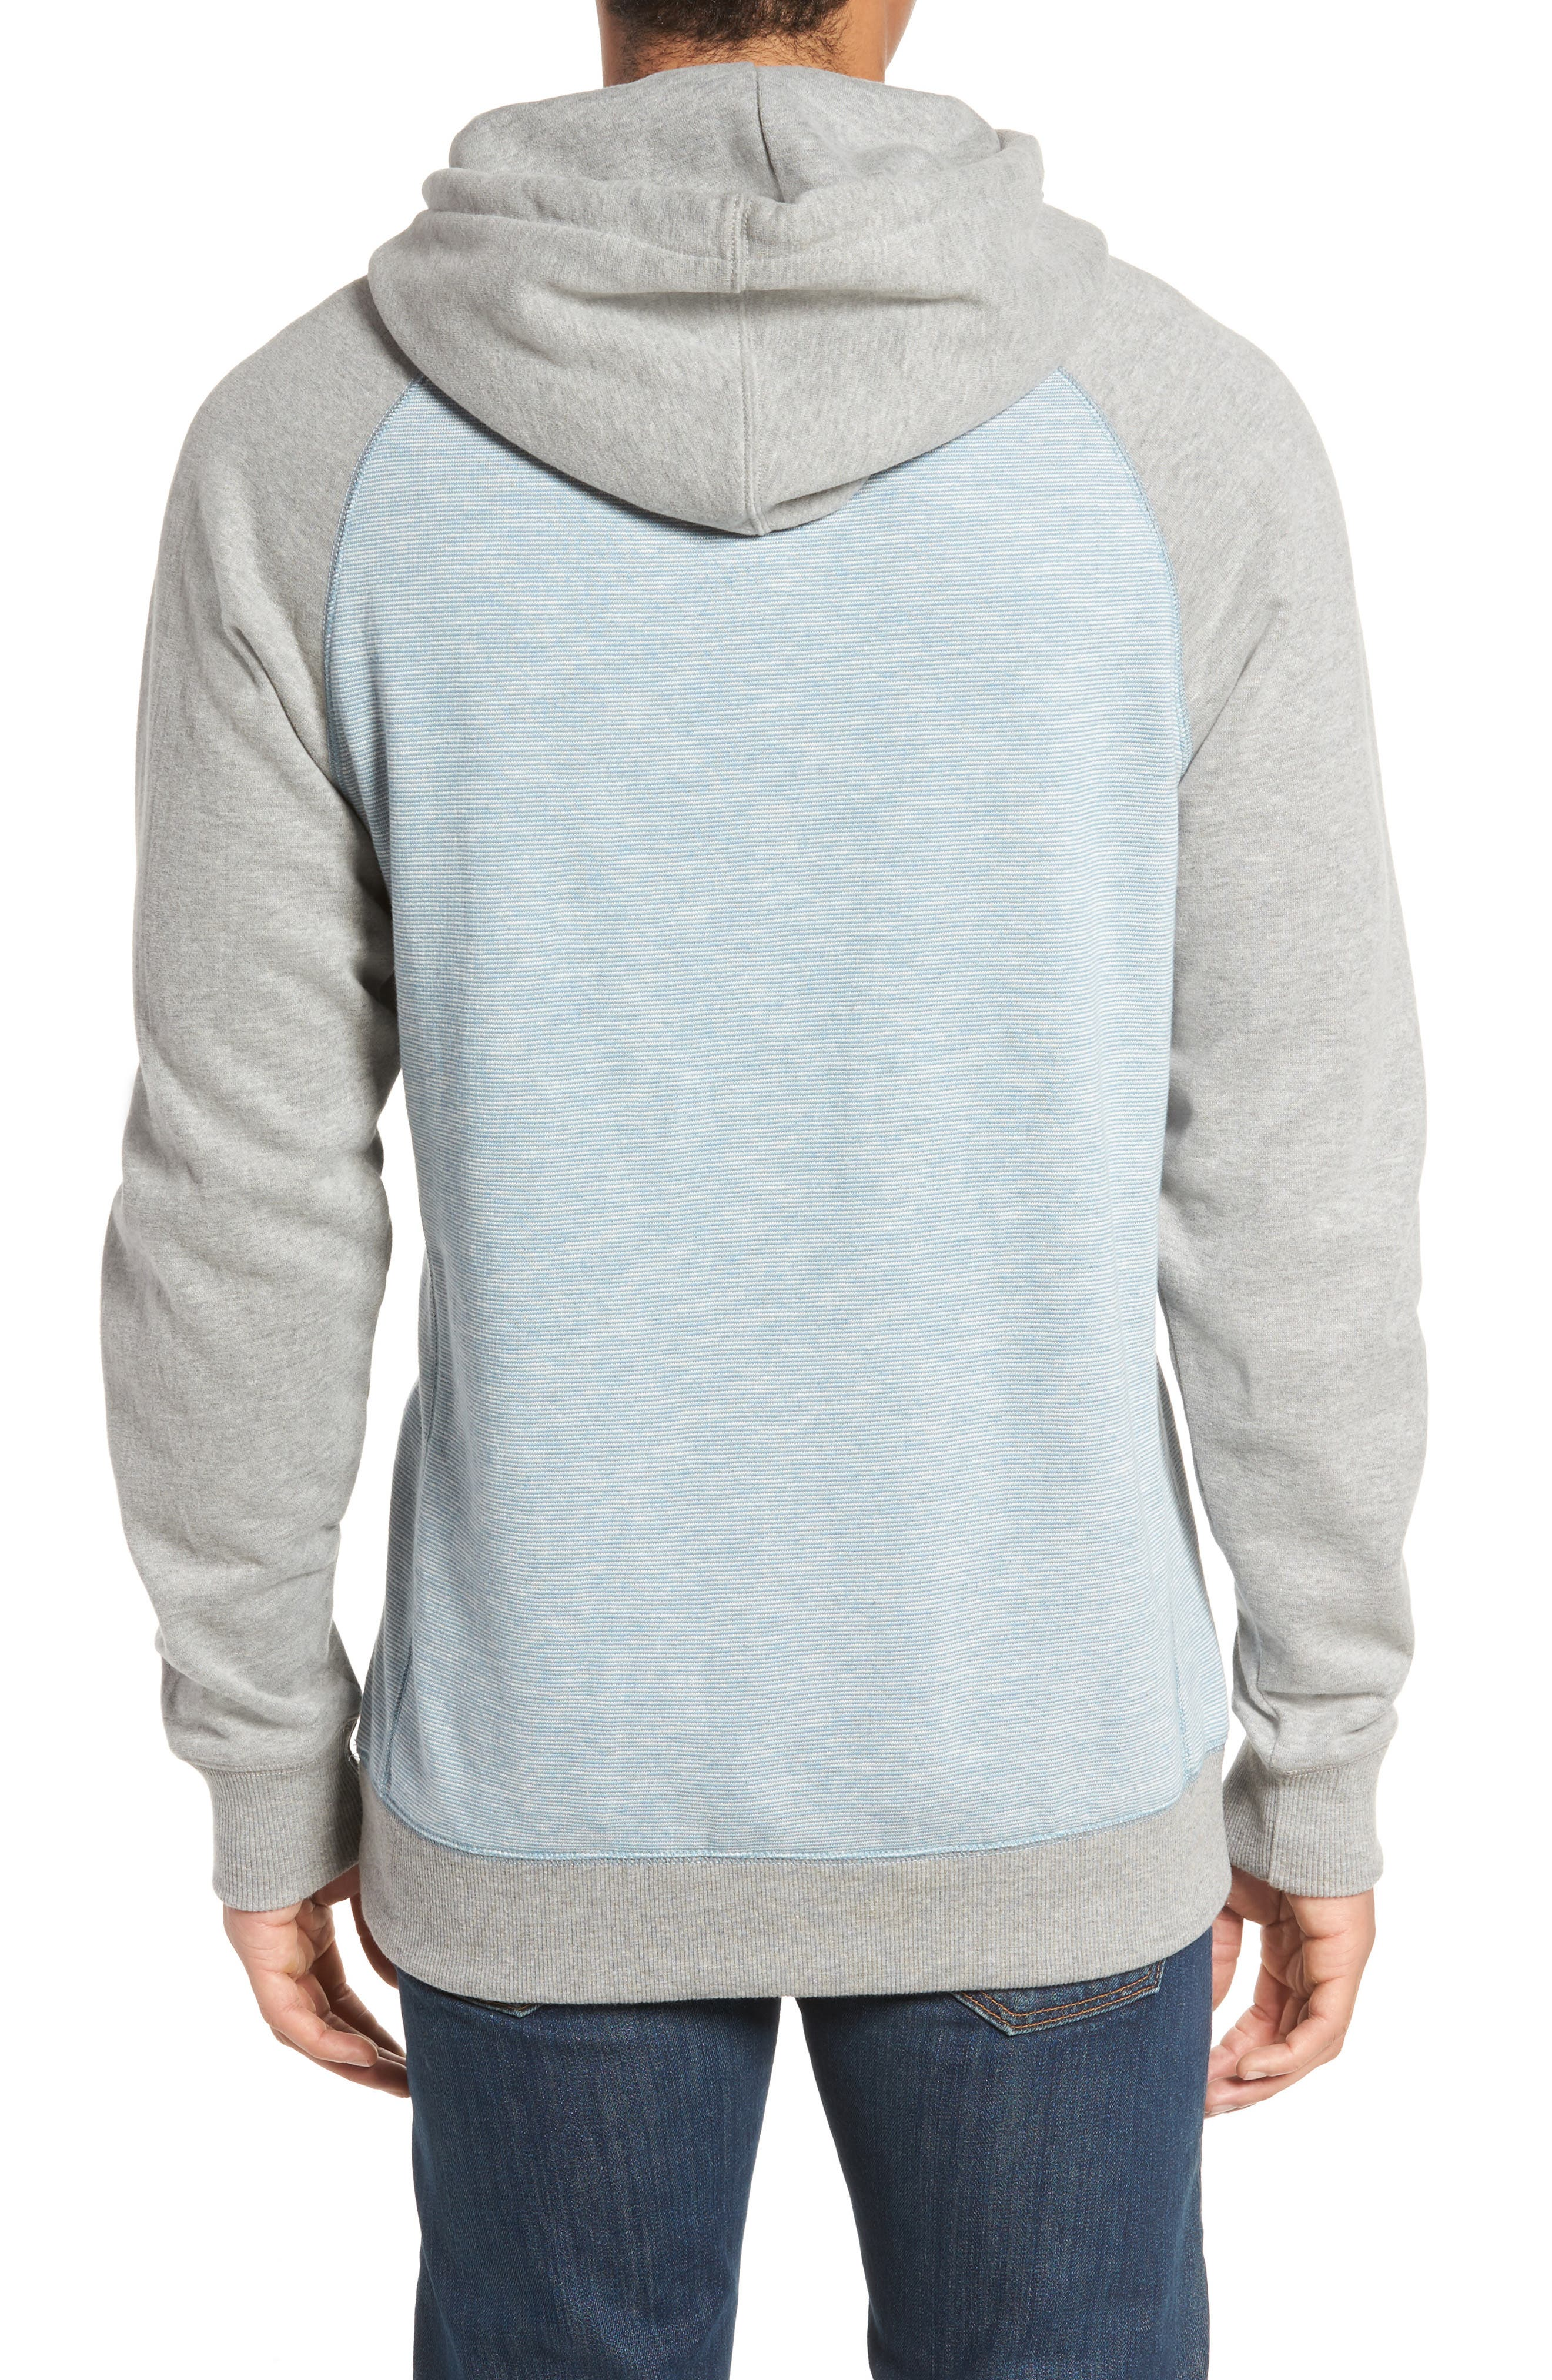 Balance Hoodie,                             Alternate thumbnail 4, color,